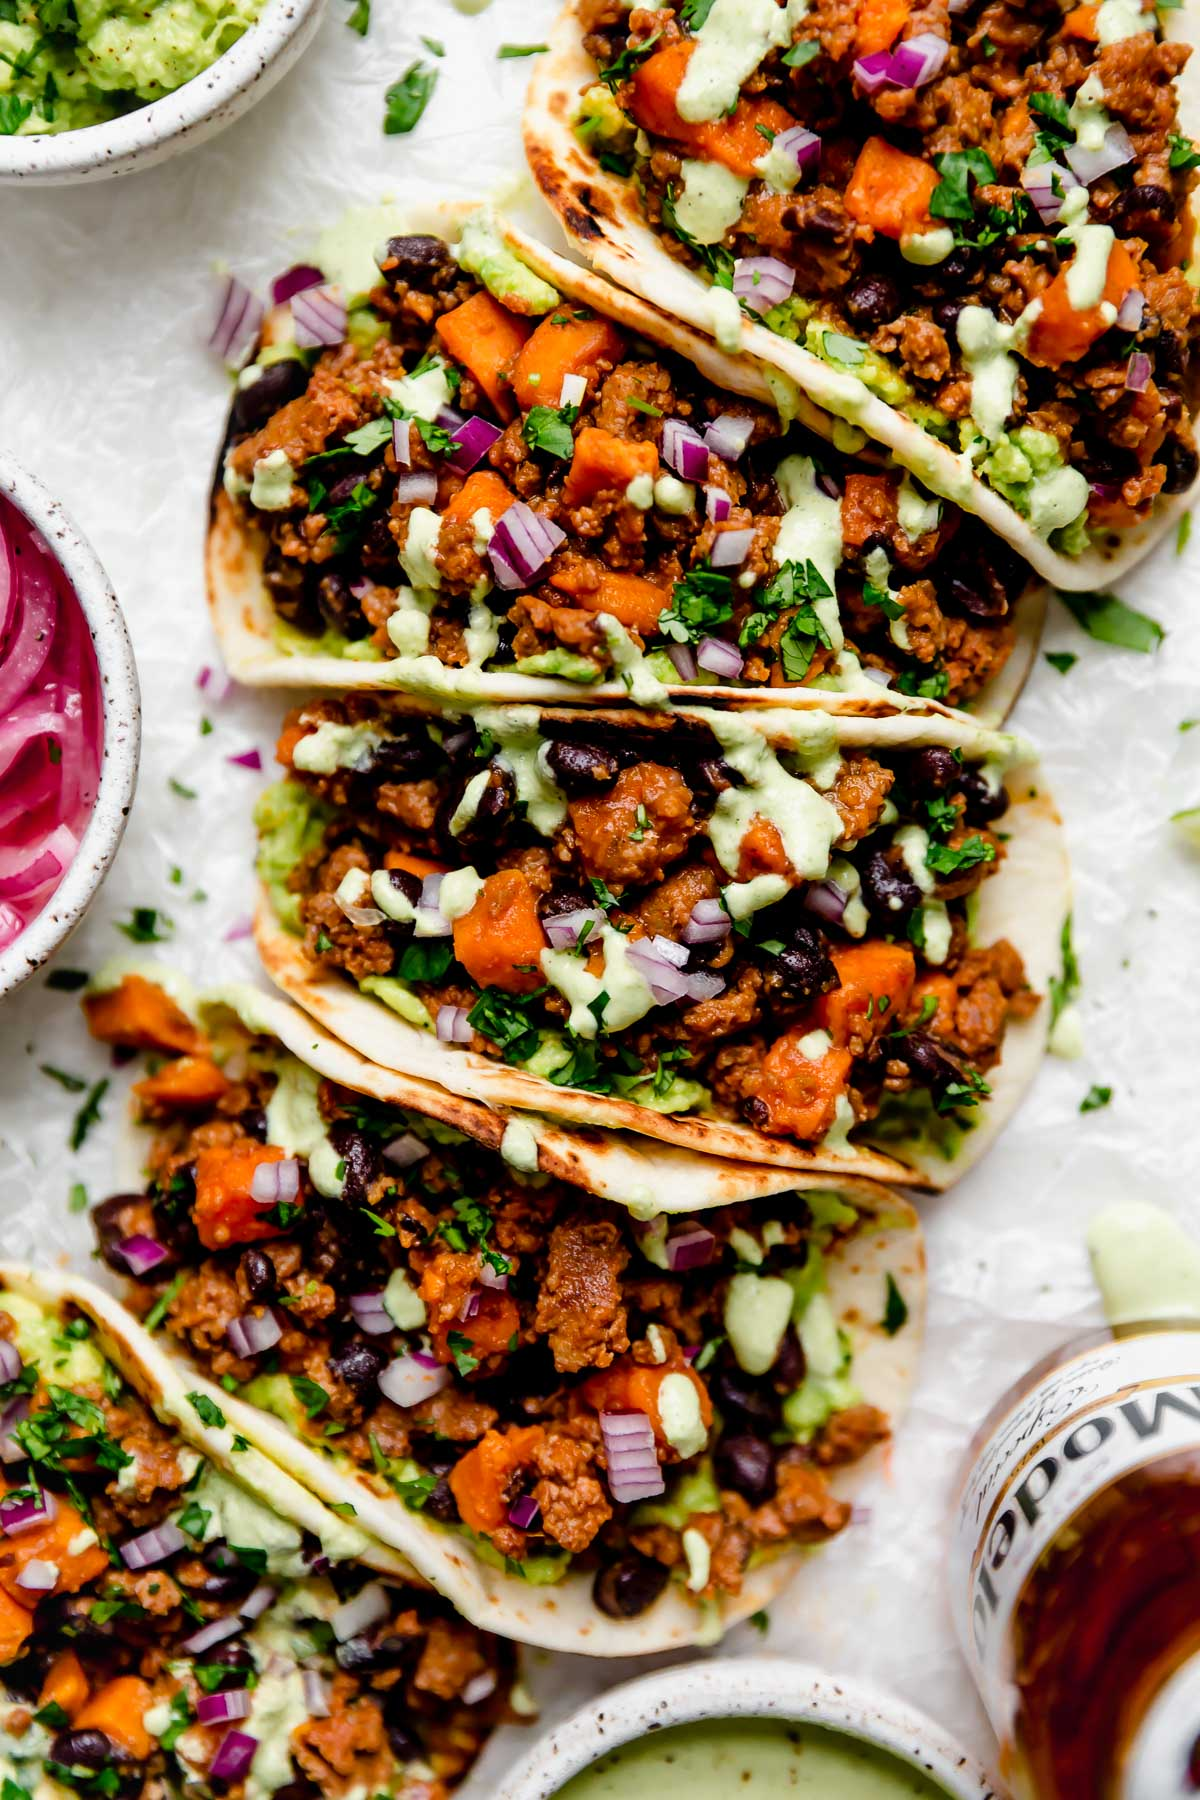 Chorizo Sweet Potato Tacos arranged on a white surface. The tacos are topped with a drizzle of homemade cilantro lime crema. Surrounding the tacos are small bowls of taco toppings (pickled red onions, guacamole, crema, etc.) & a bottle of Modelo beer.